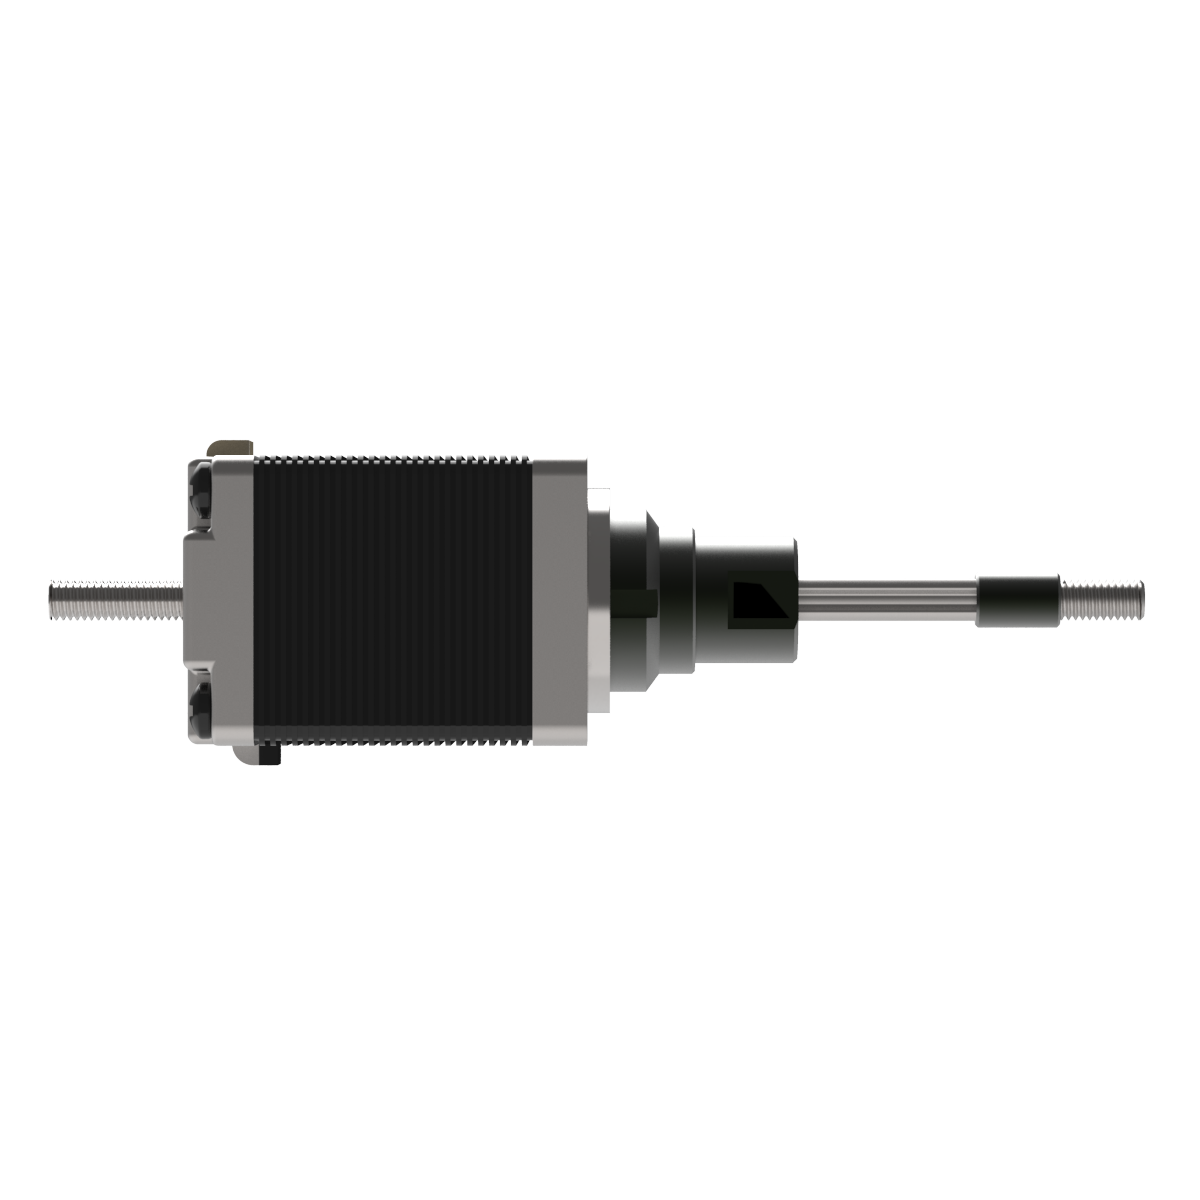 Captive Linear Actuator - SMA-8S2.5V-C -012-048-19.1